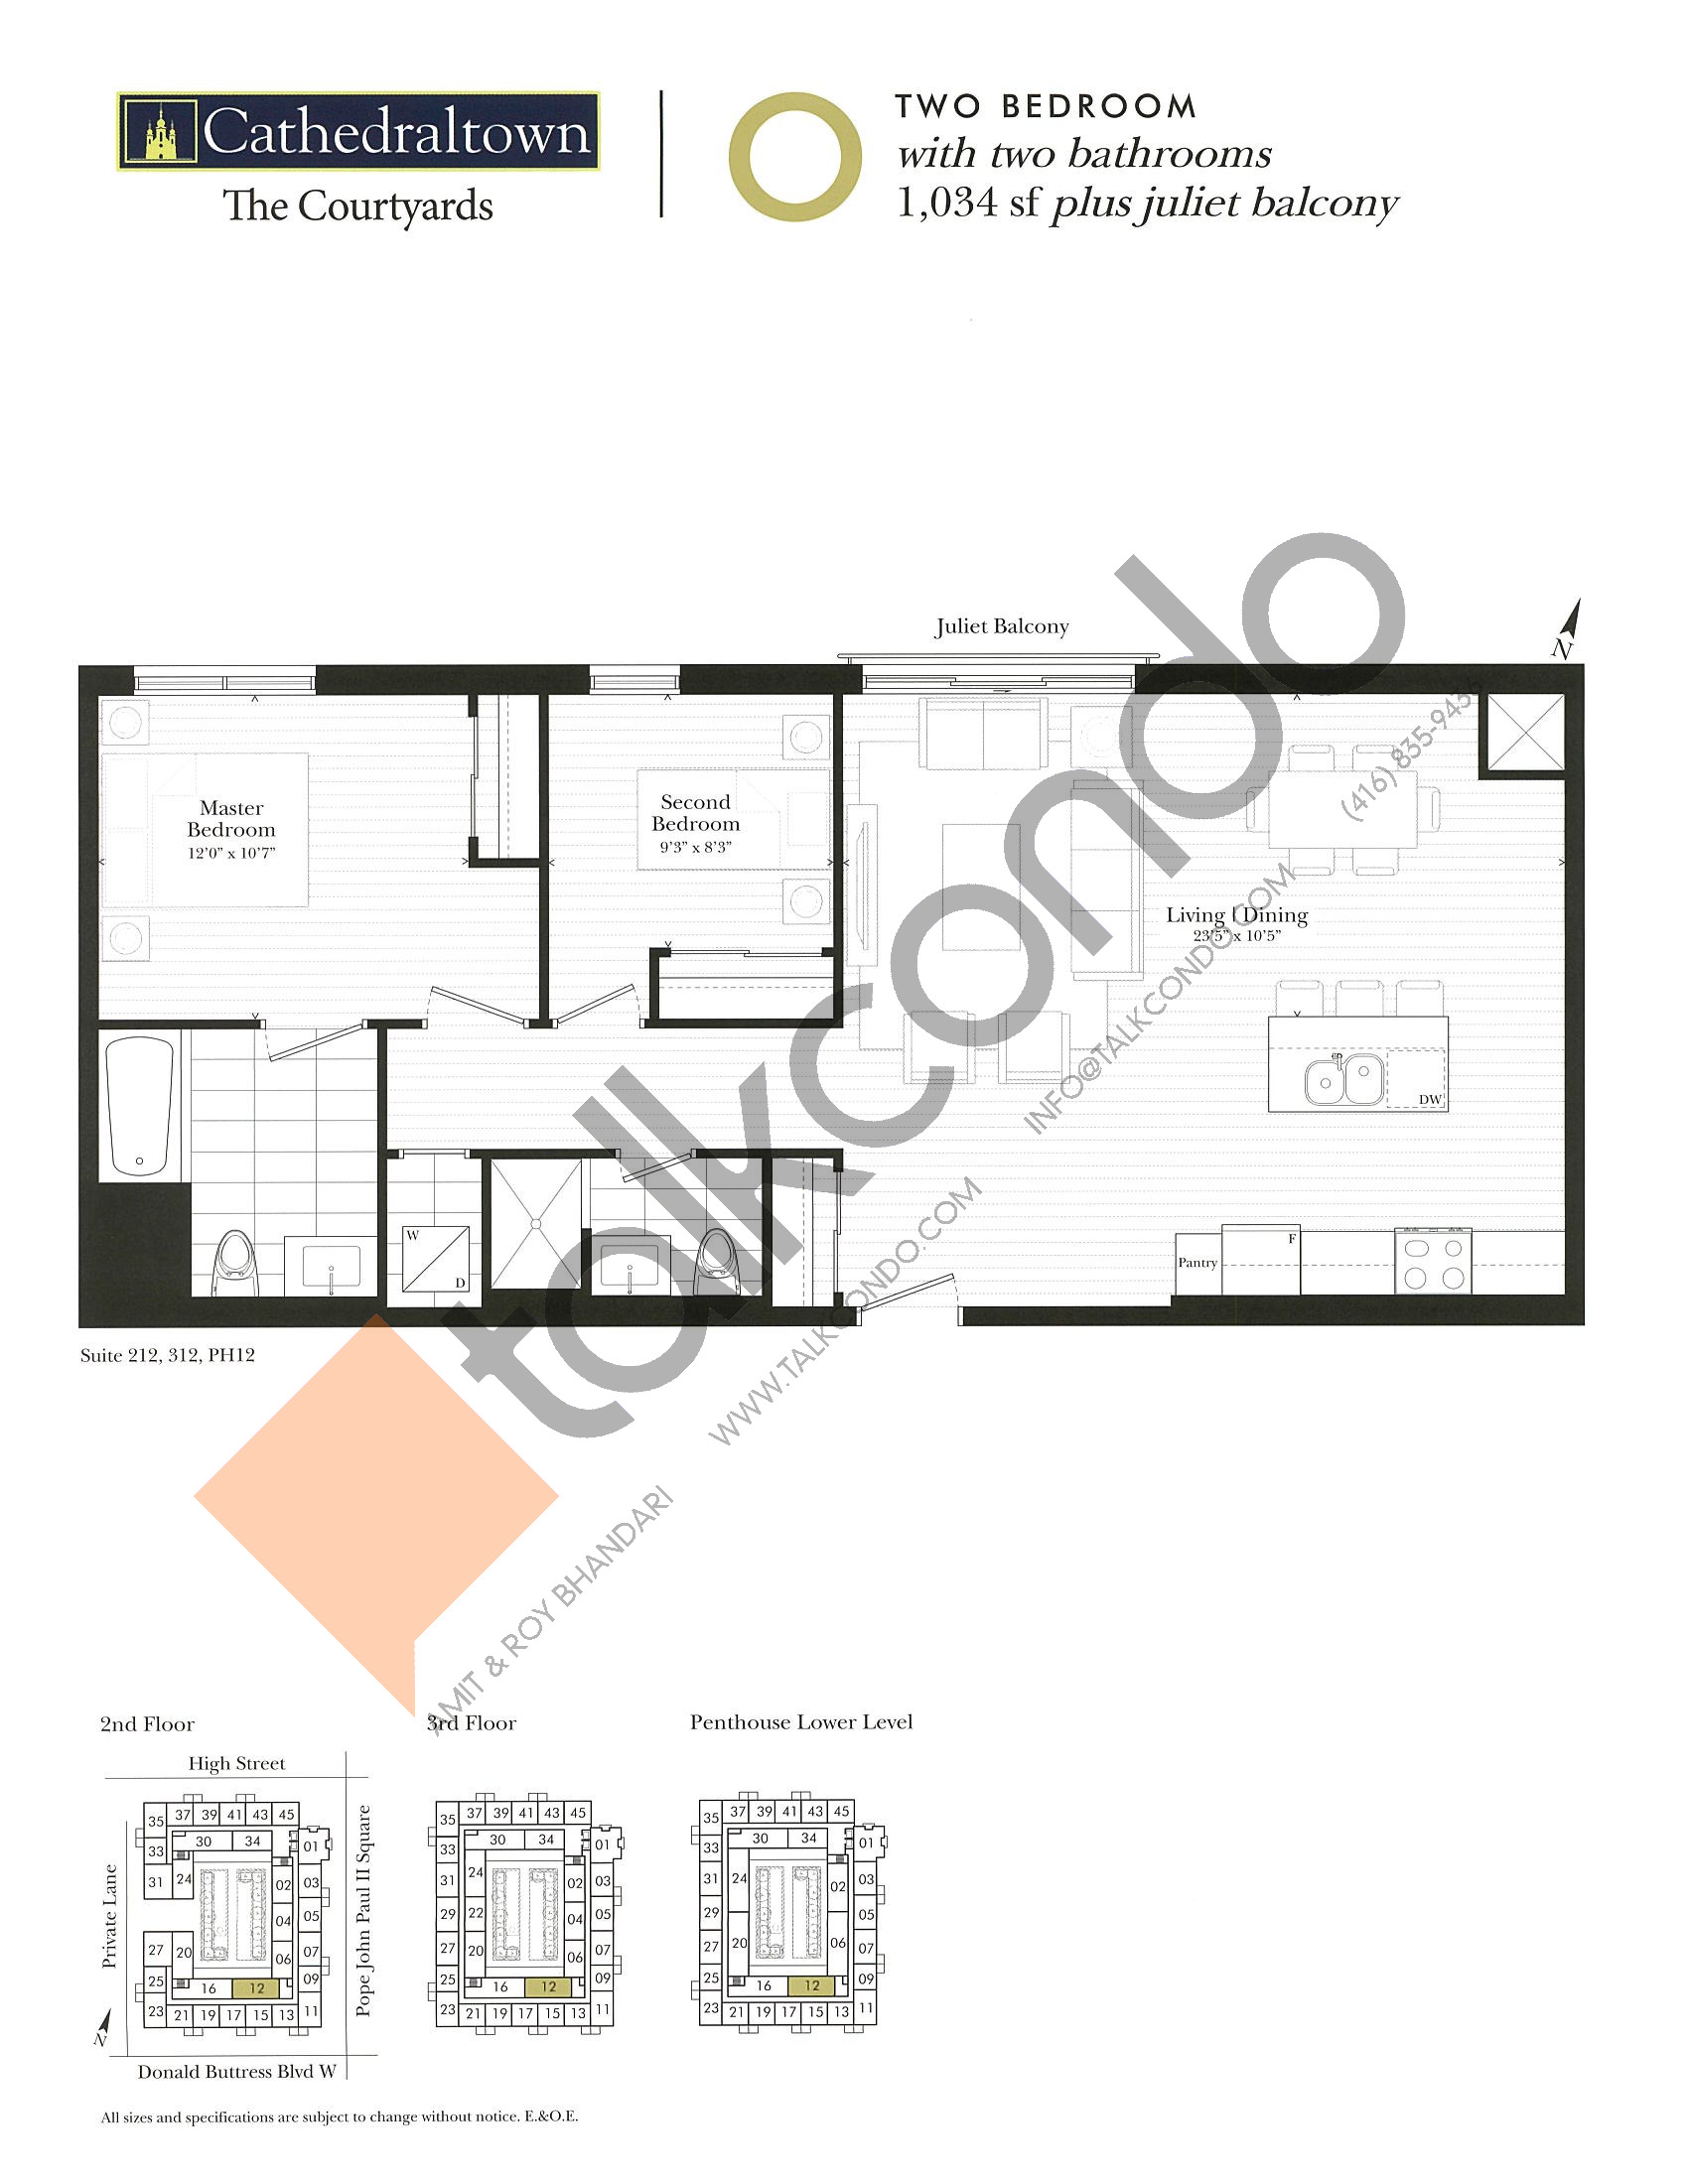 Unit O Floor Plan at The Courtyards at Cathedraltown Condos - 1034 sq.ft